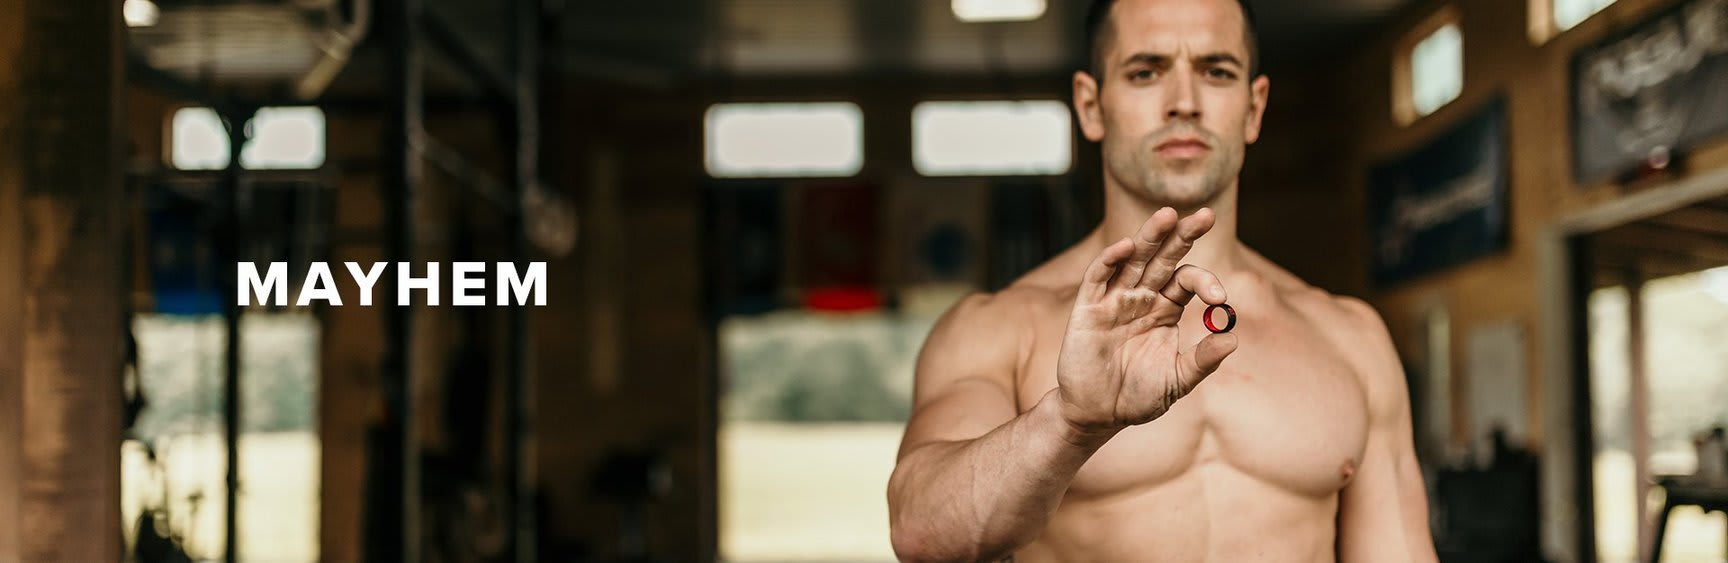 Mayhem, Rich Froning holding up a groove ring in his studio